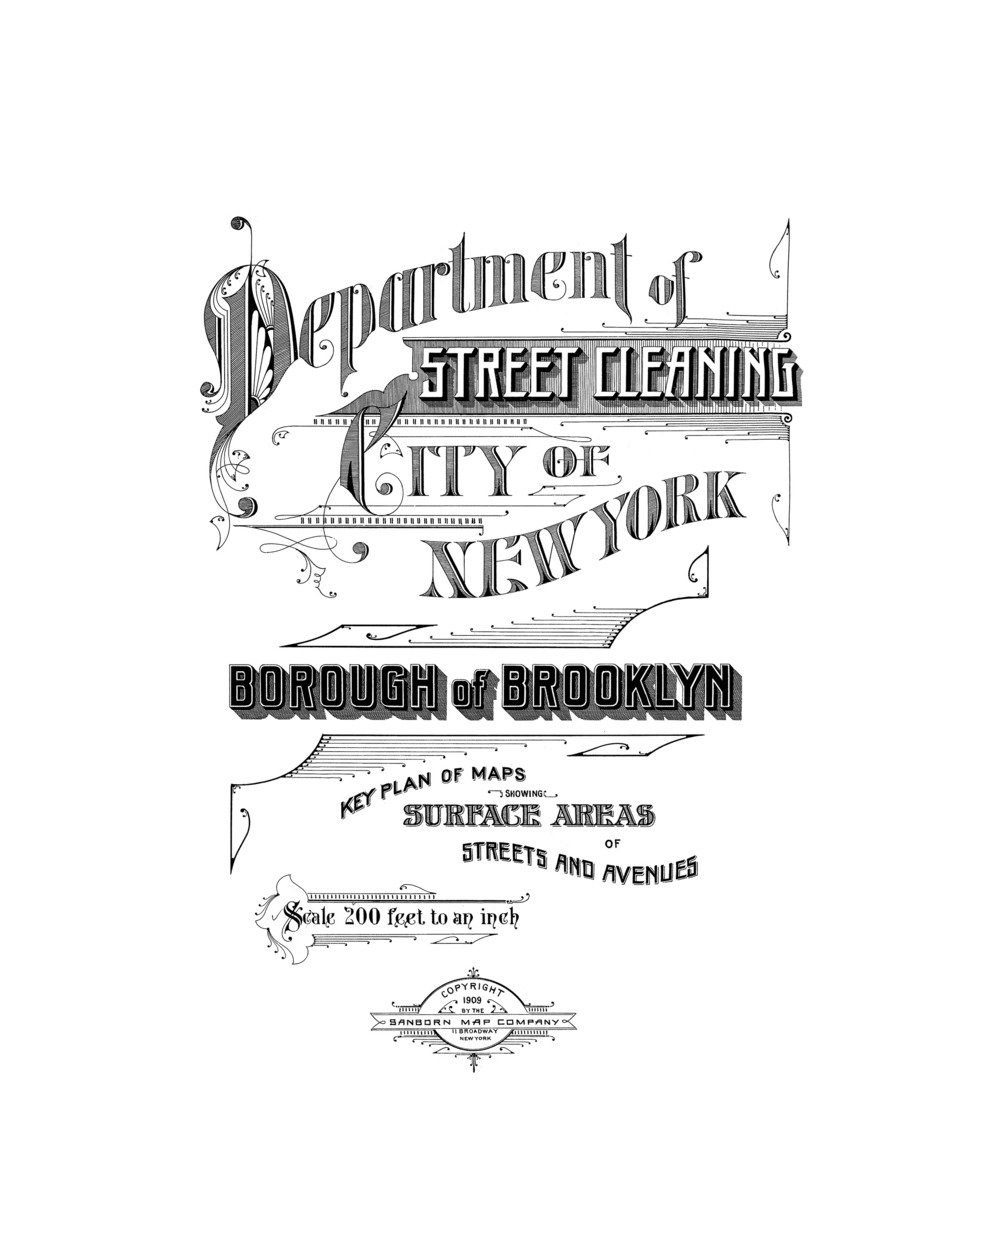 Brooklyn Street Cleaning 1909.jpg